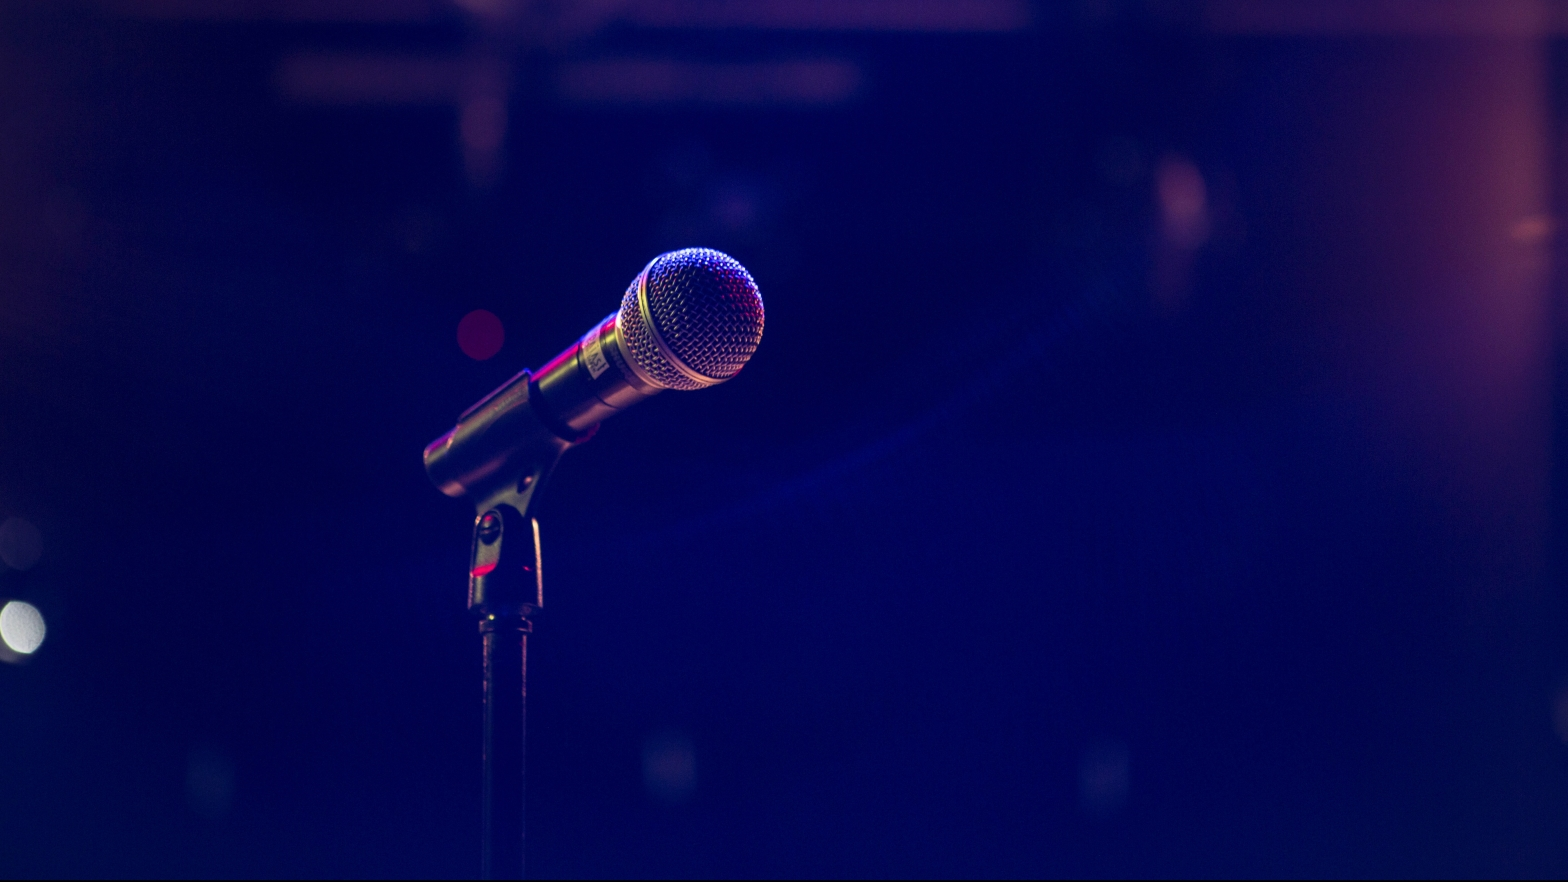 A microphone, probably on a stage, with hazy lighting